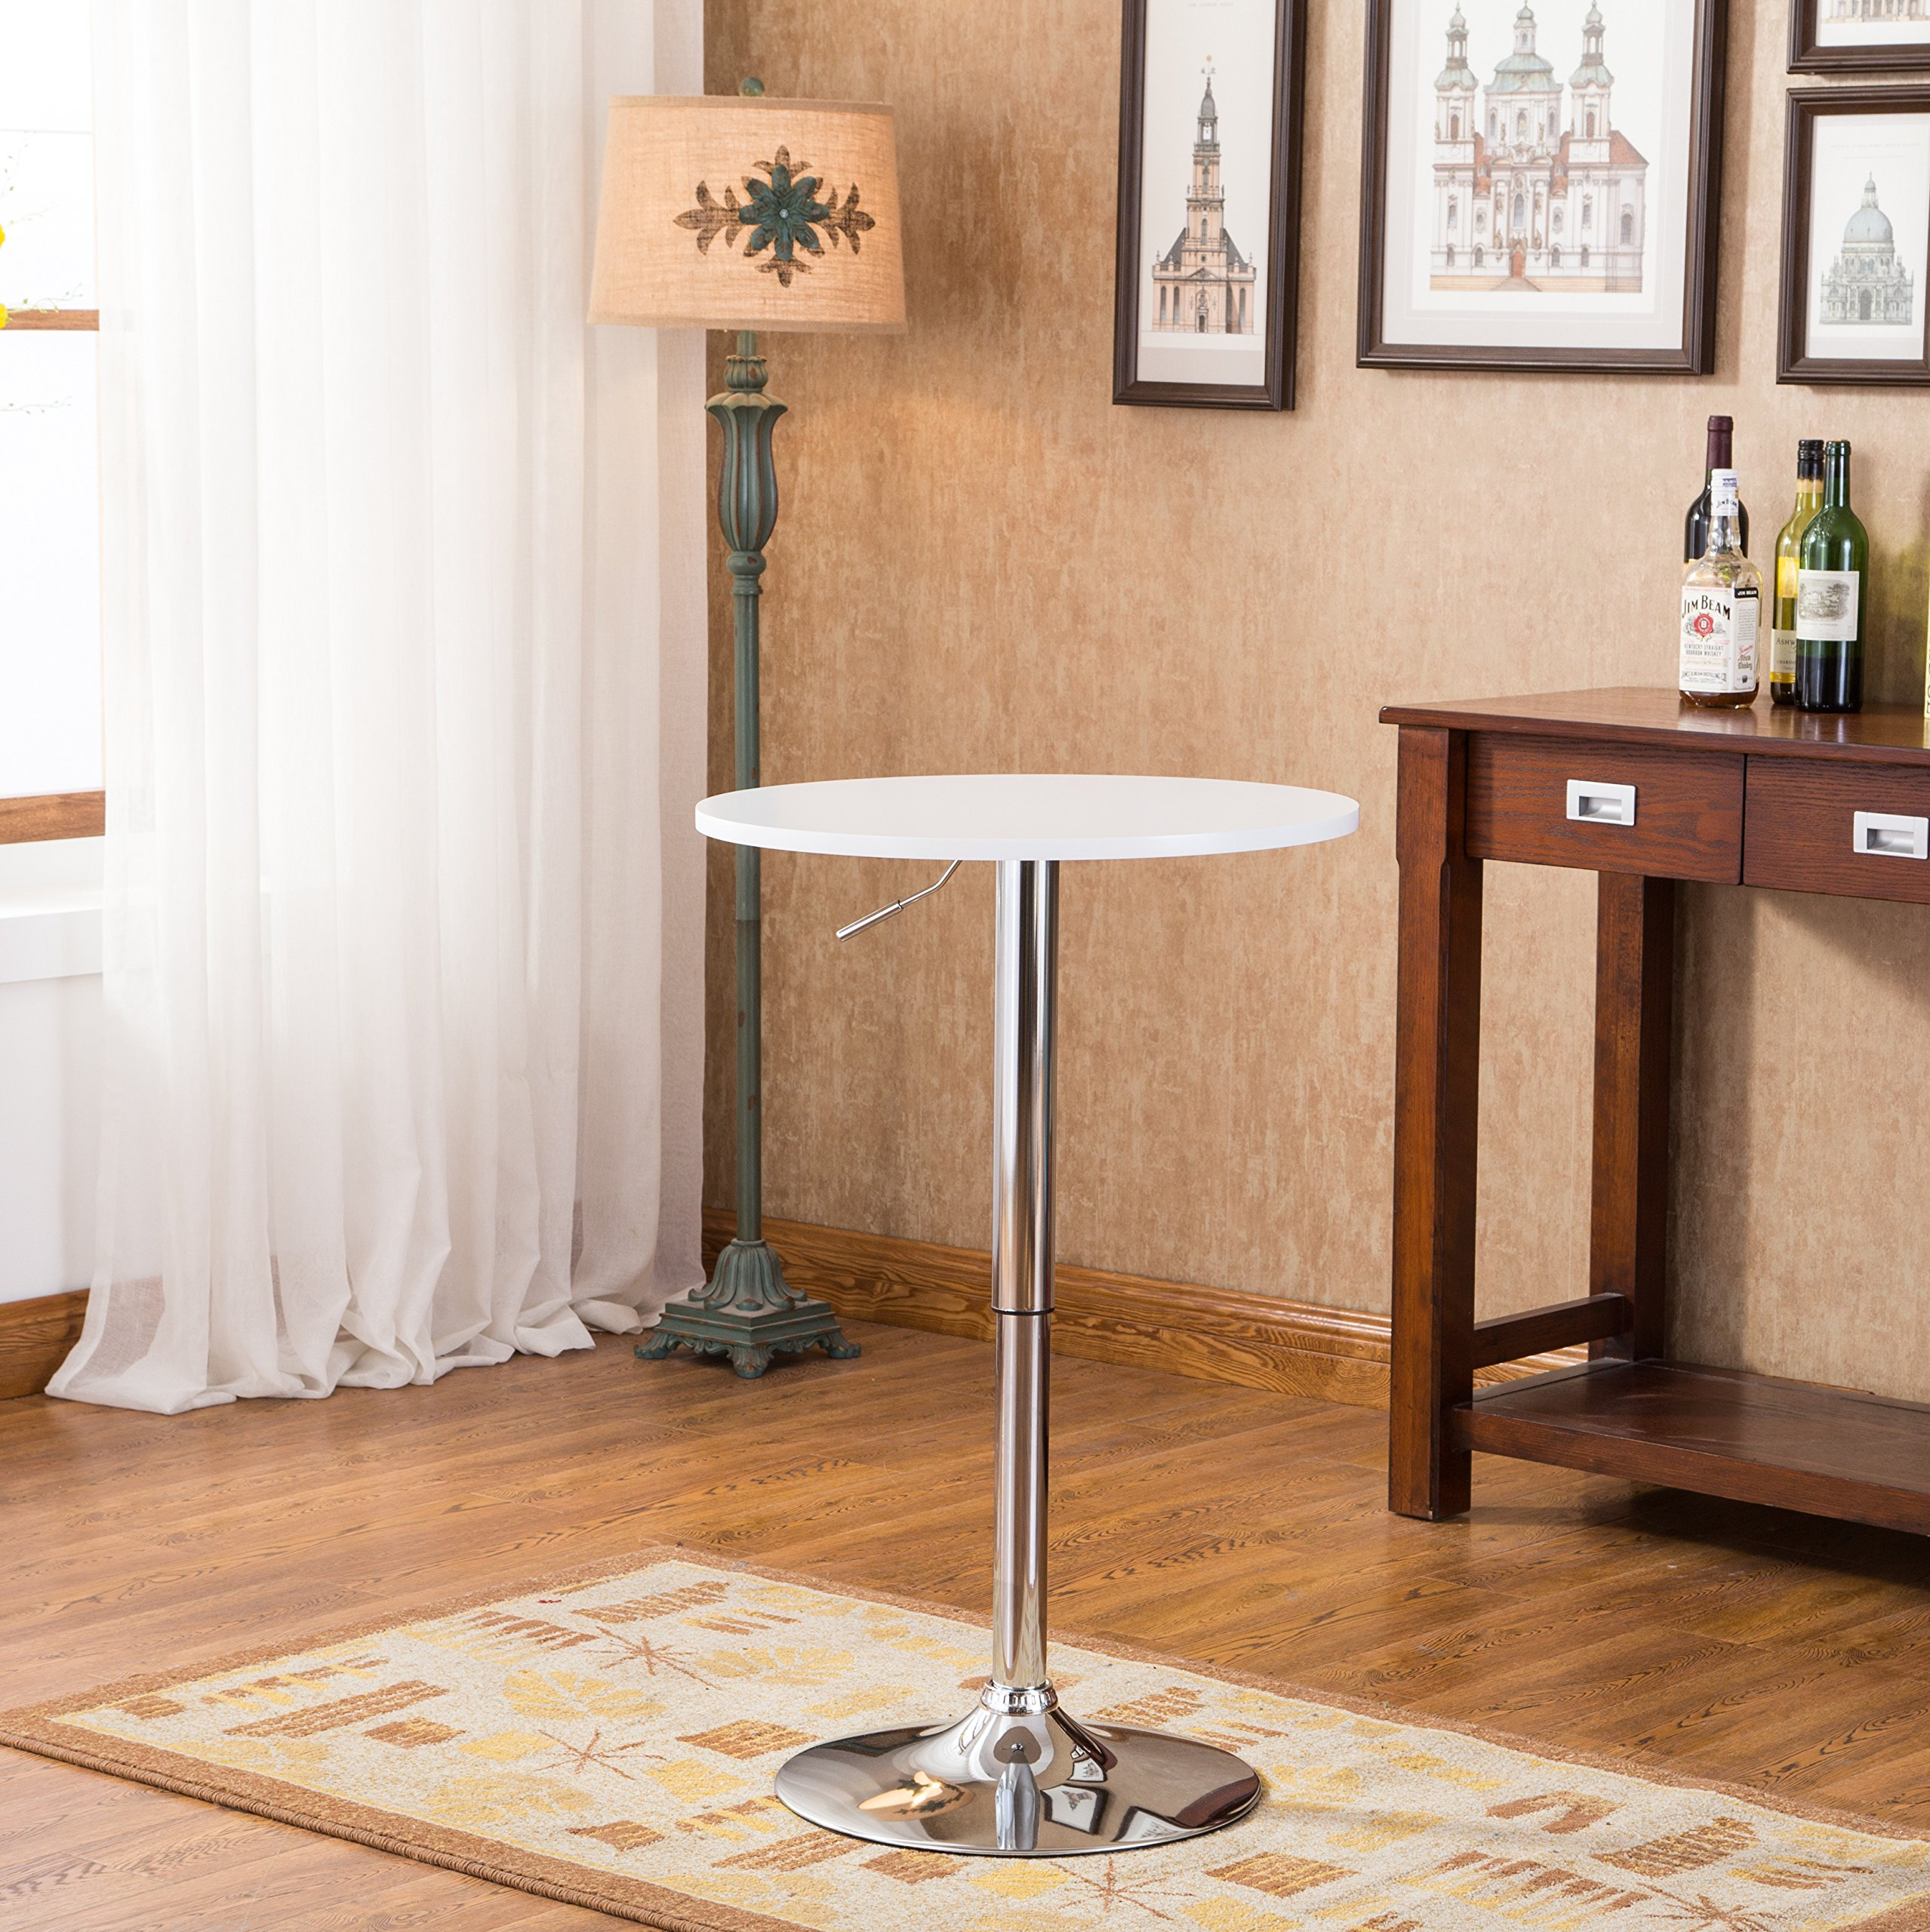 Roundhill Furniture Adjustable Height Wood and Chrome Metal Bar Table, White by Roundhill Furniture